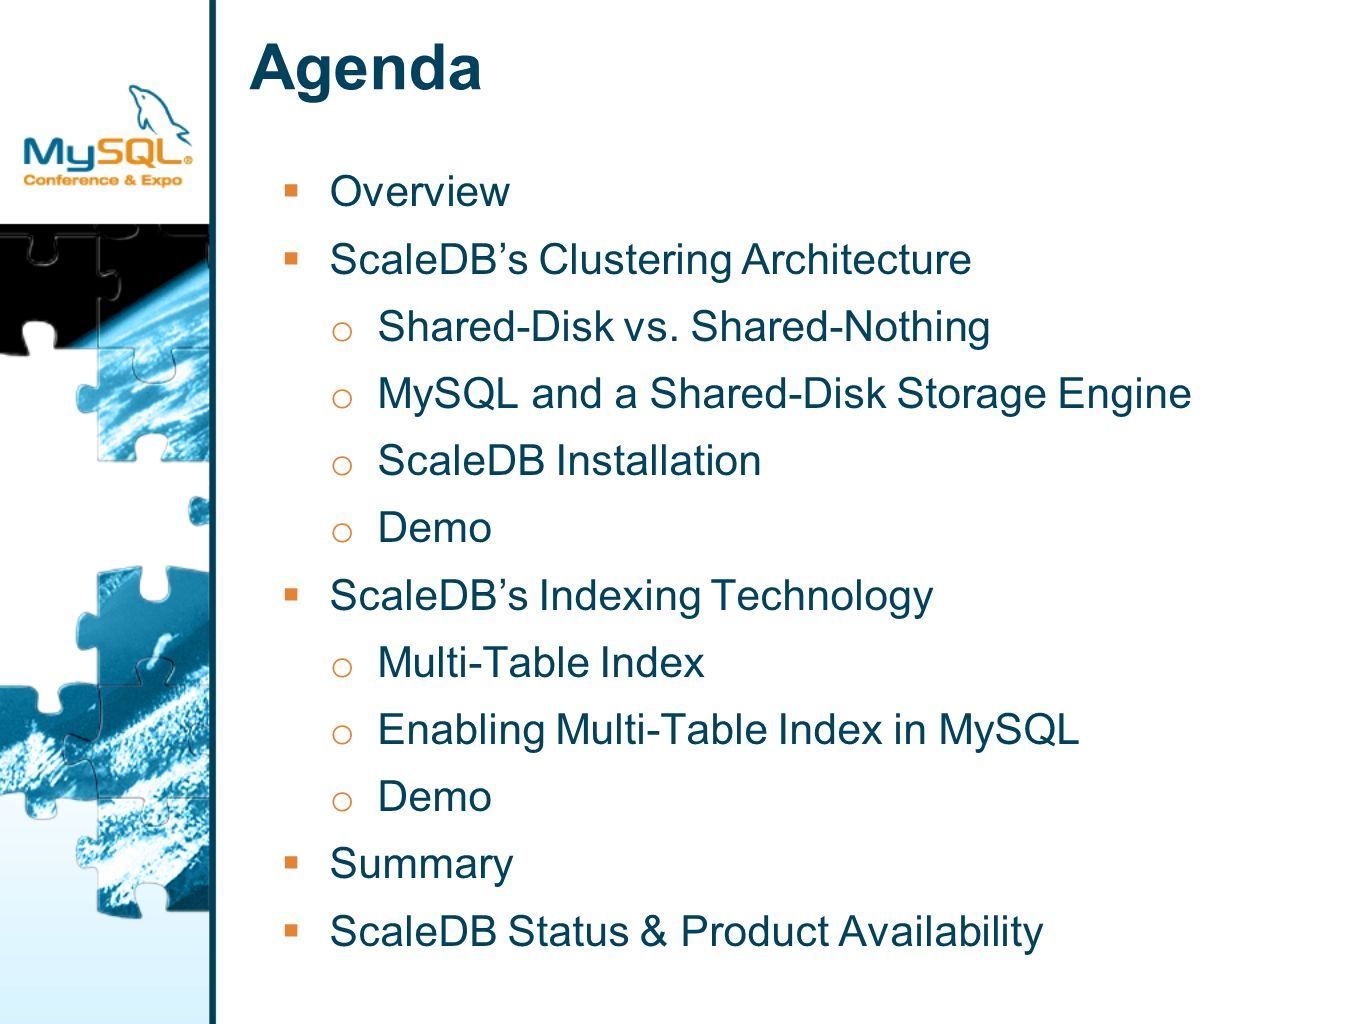 Agenda Overview ScaleDBs Clustering Architecture o Shared-Disk vs. Shared-Nothing o MySQL and a Shared-Disk Storage Engine o ScaleDB Installation o De